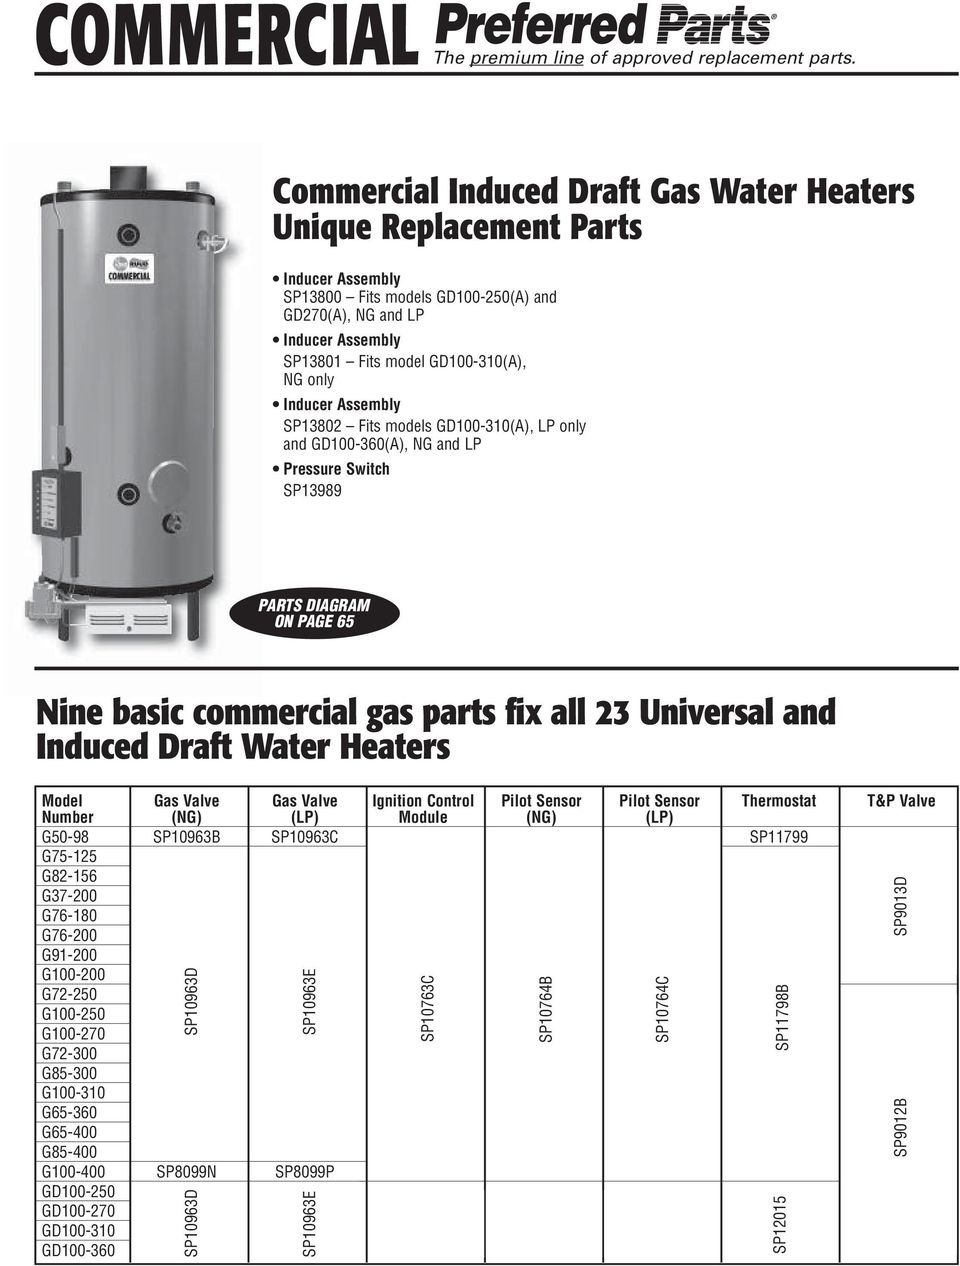 Rheem water heater parts guide pdf inducer assembly sp13802 fits models gd100 310a lp only and gd100 ccuart Image collections